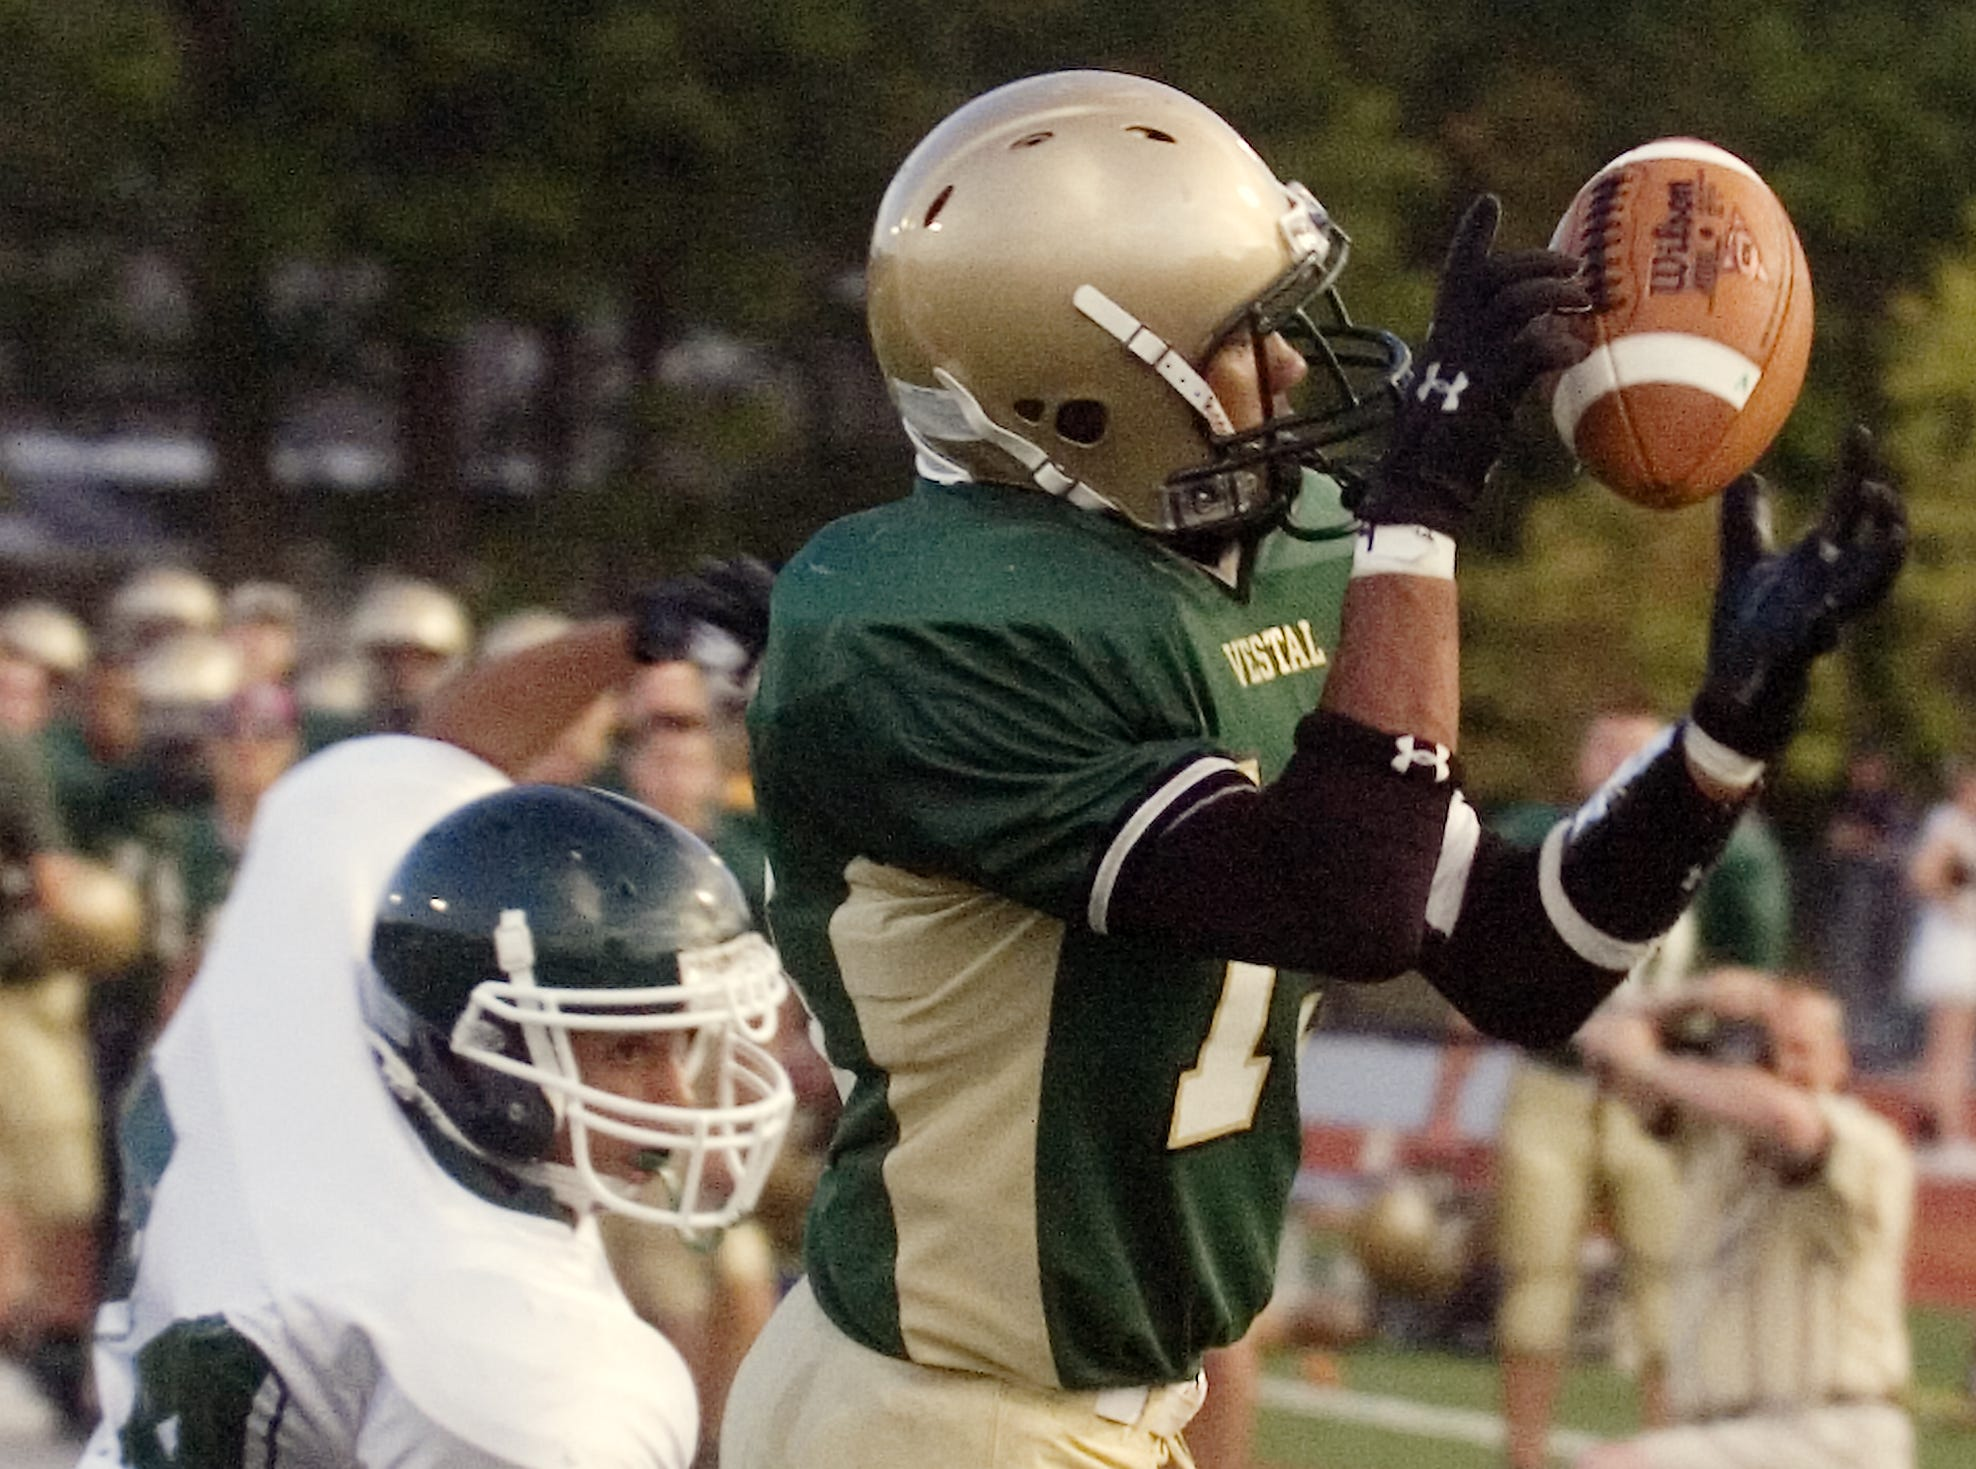 In 2008, Vestal's Kameron Sowell gets by Elmira South Side's David Hall to make a catch in the end zone for a touchdown in the first quarter of the season-opener against Elmira South Side at Dick Hoover Stadium.